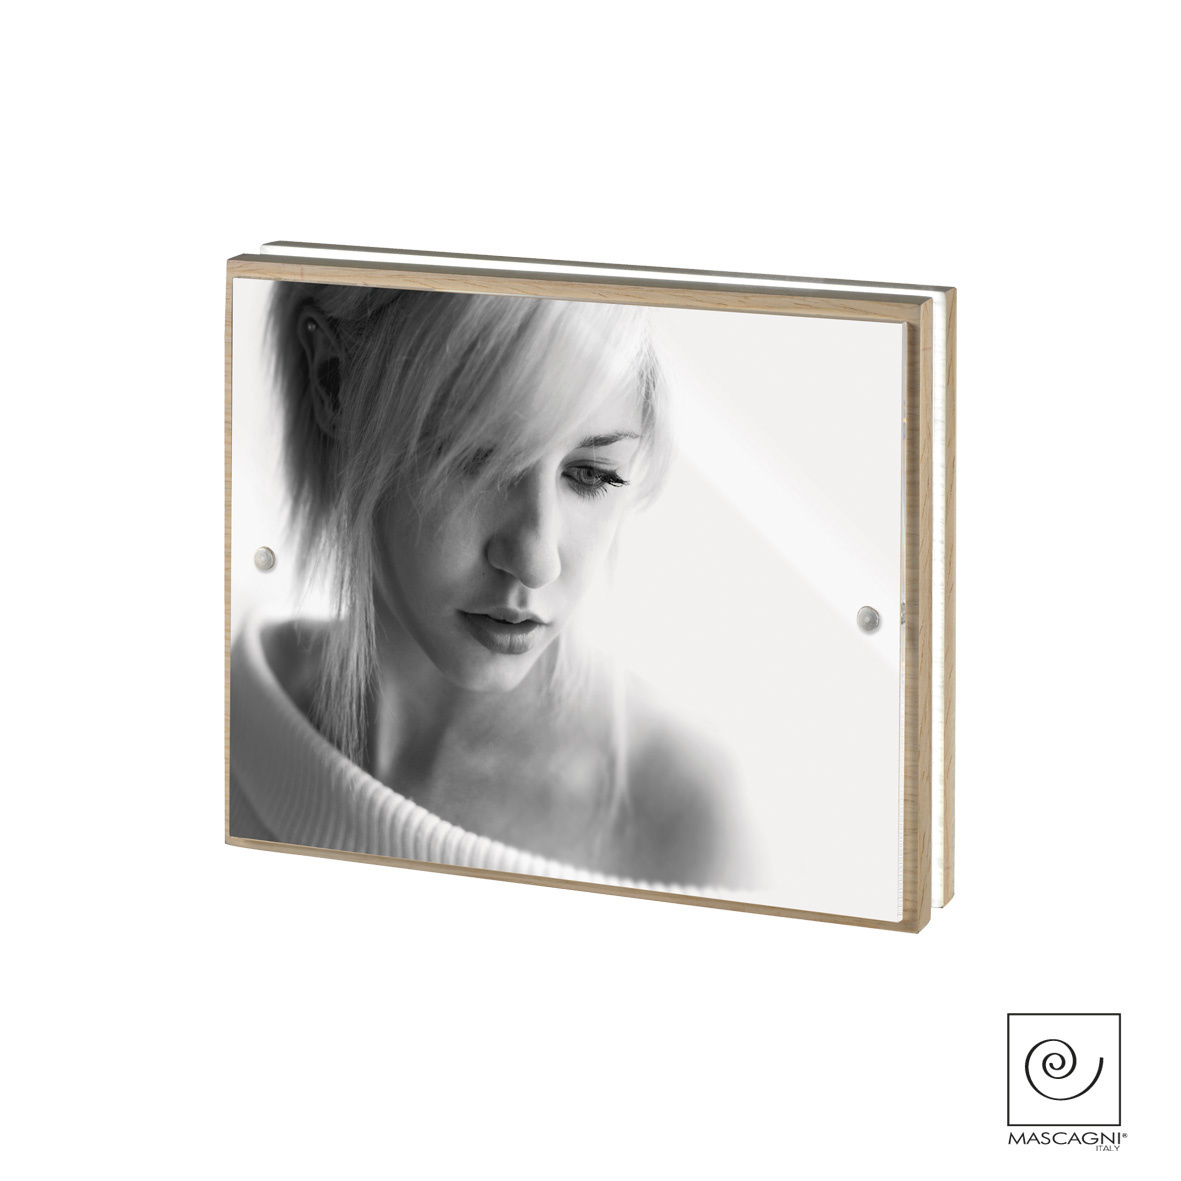 Art Mascagni A796 PHOTO FRAME LED 15X20 - COL.OAK